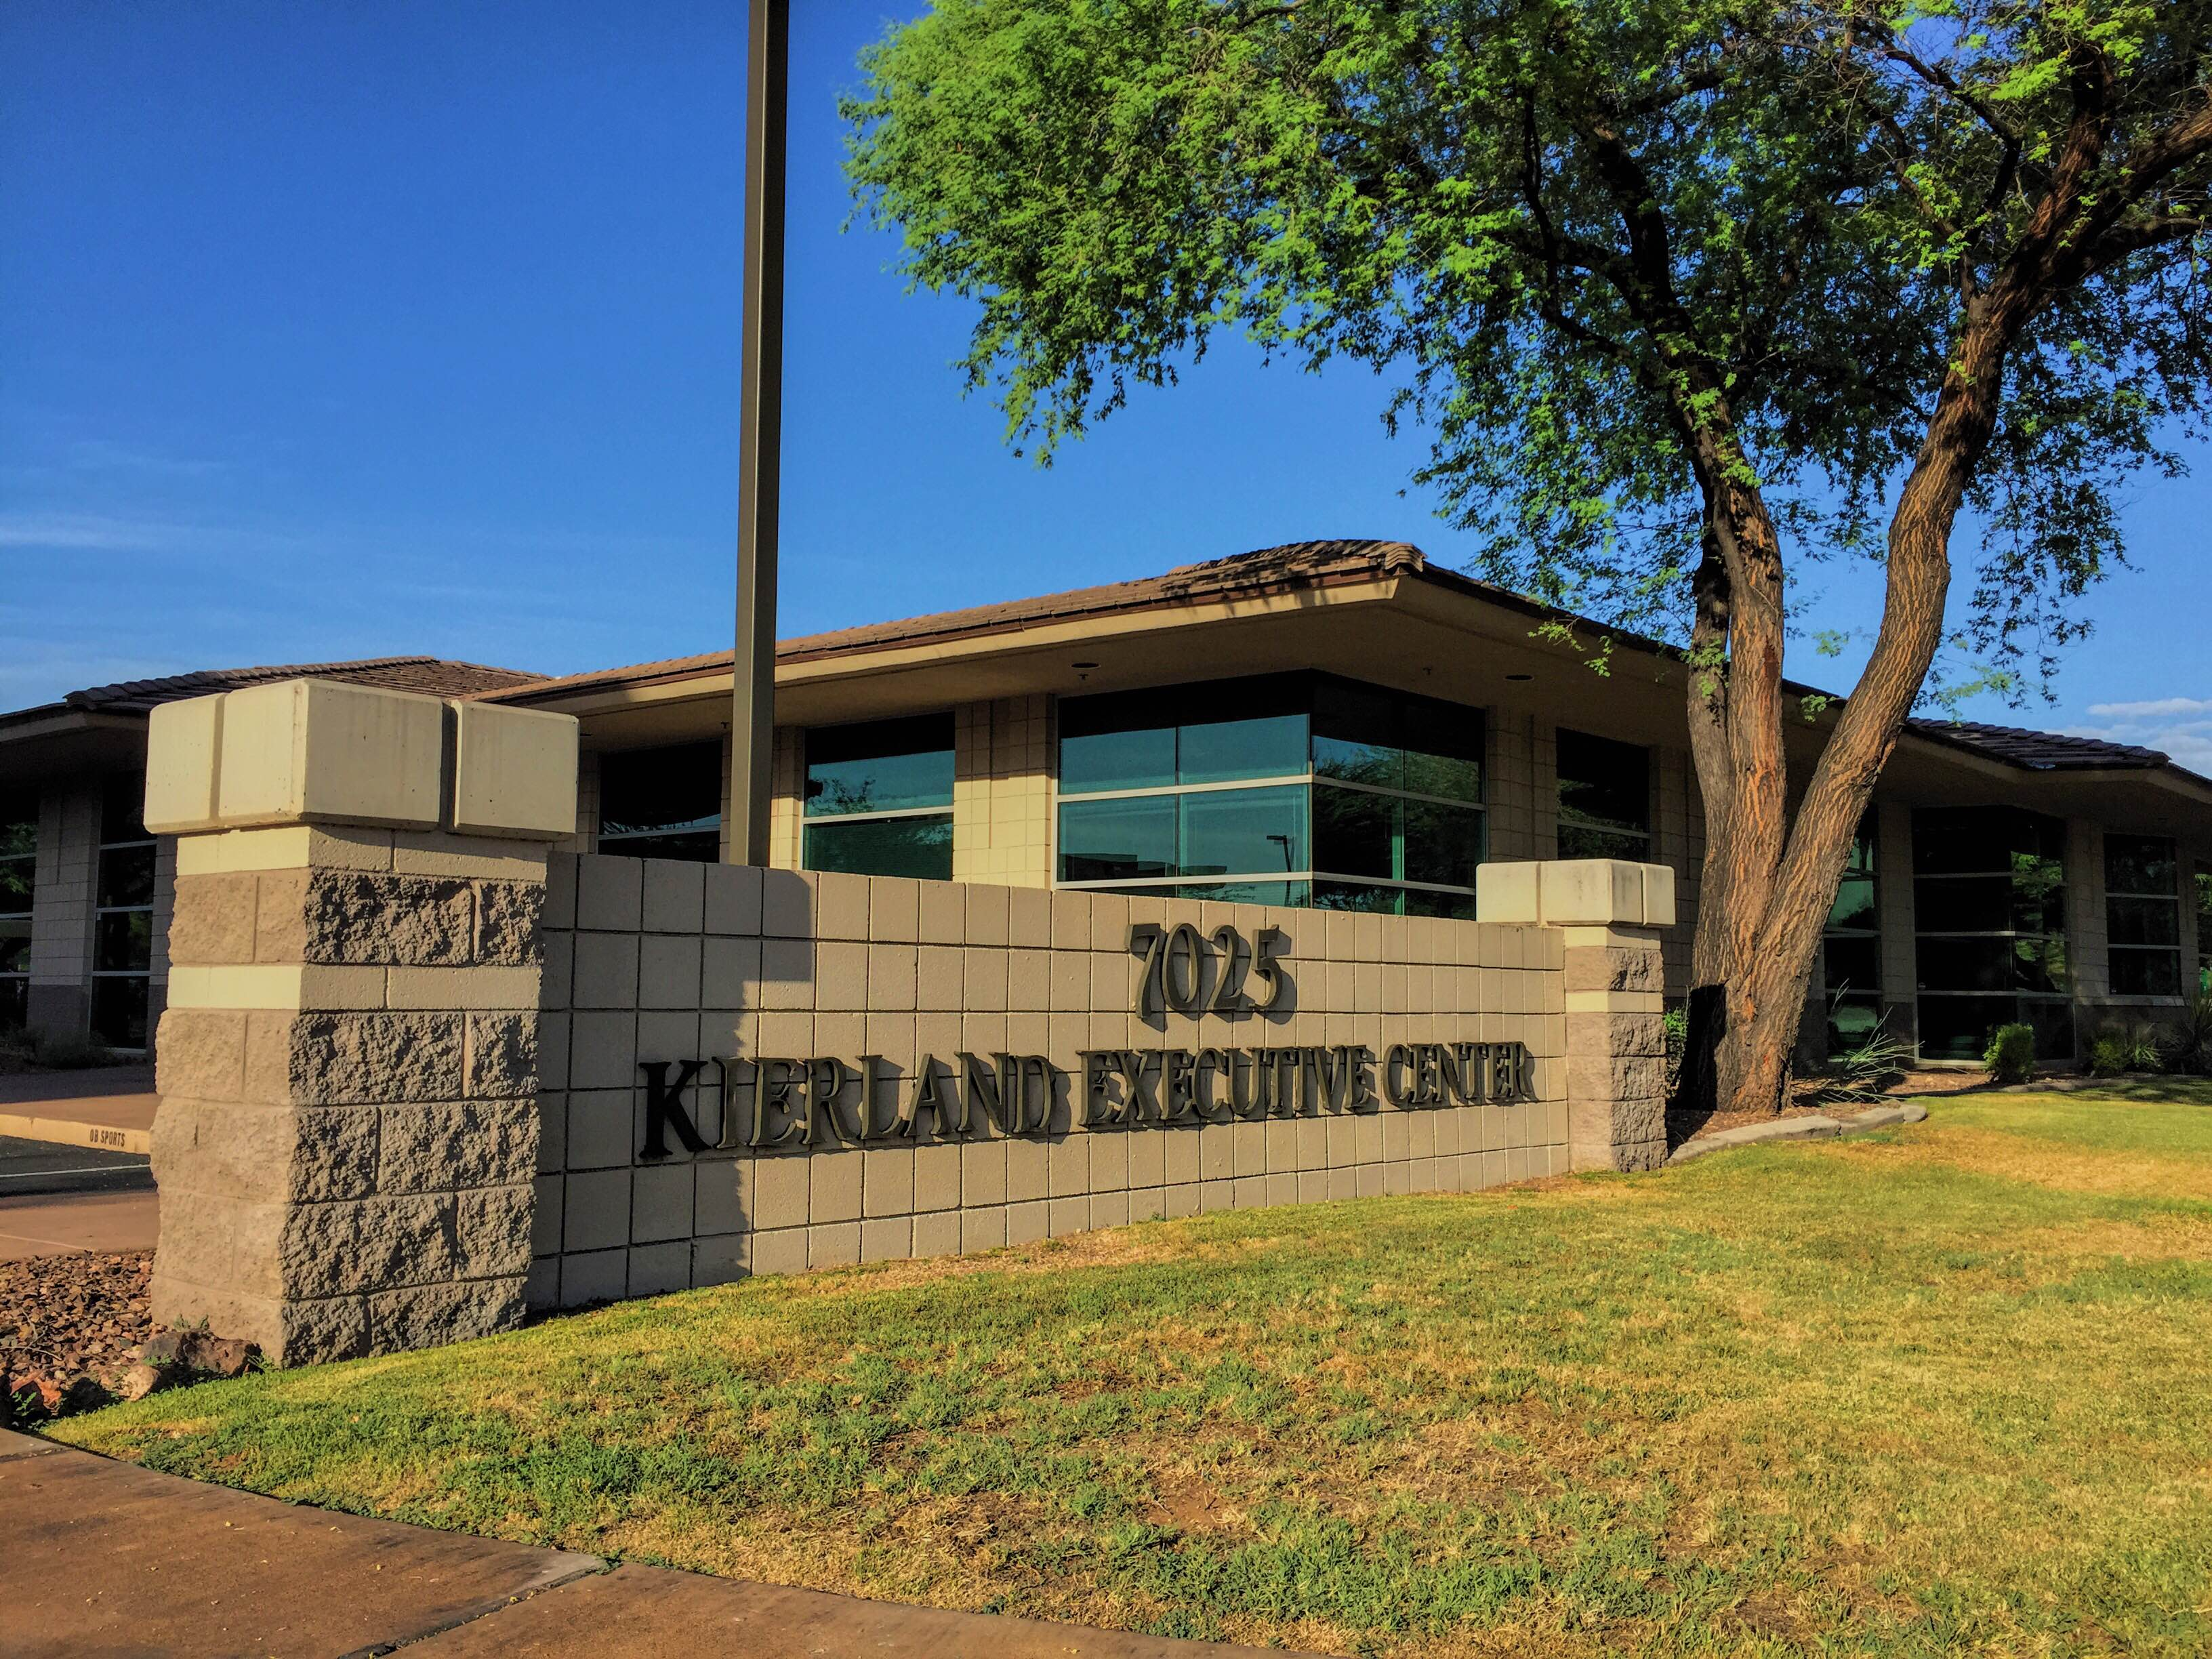 Kierland Executive Center I